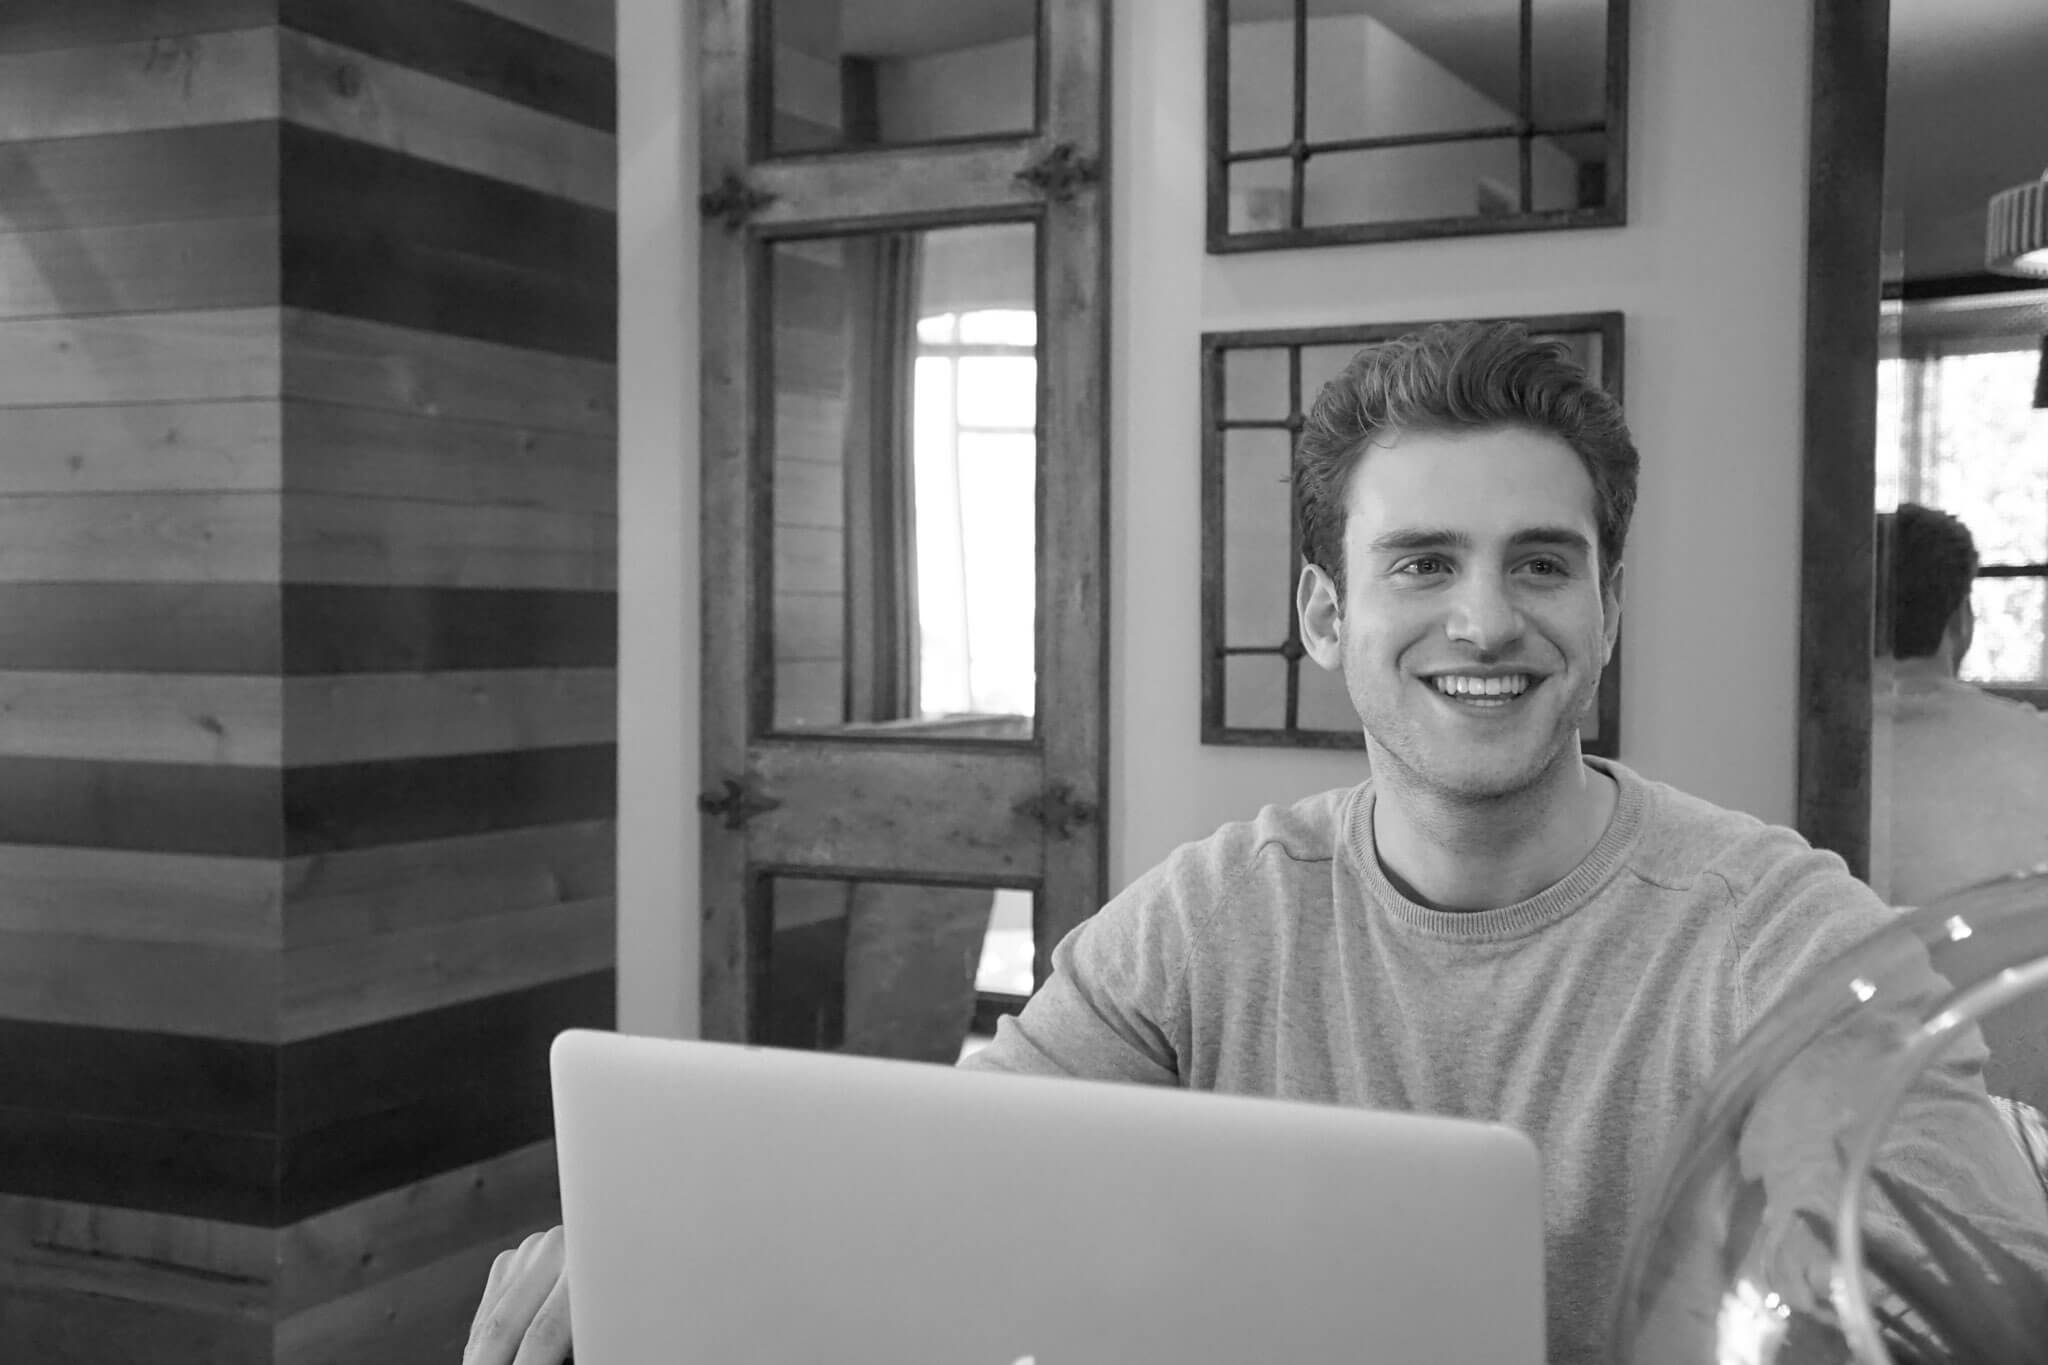 Dillon Ross, a Recent College Graduate, Is Finding a Way to Scale His Business During the Pandemic